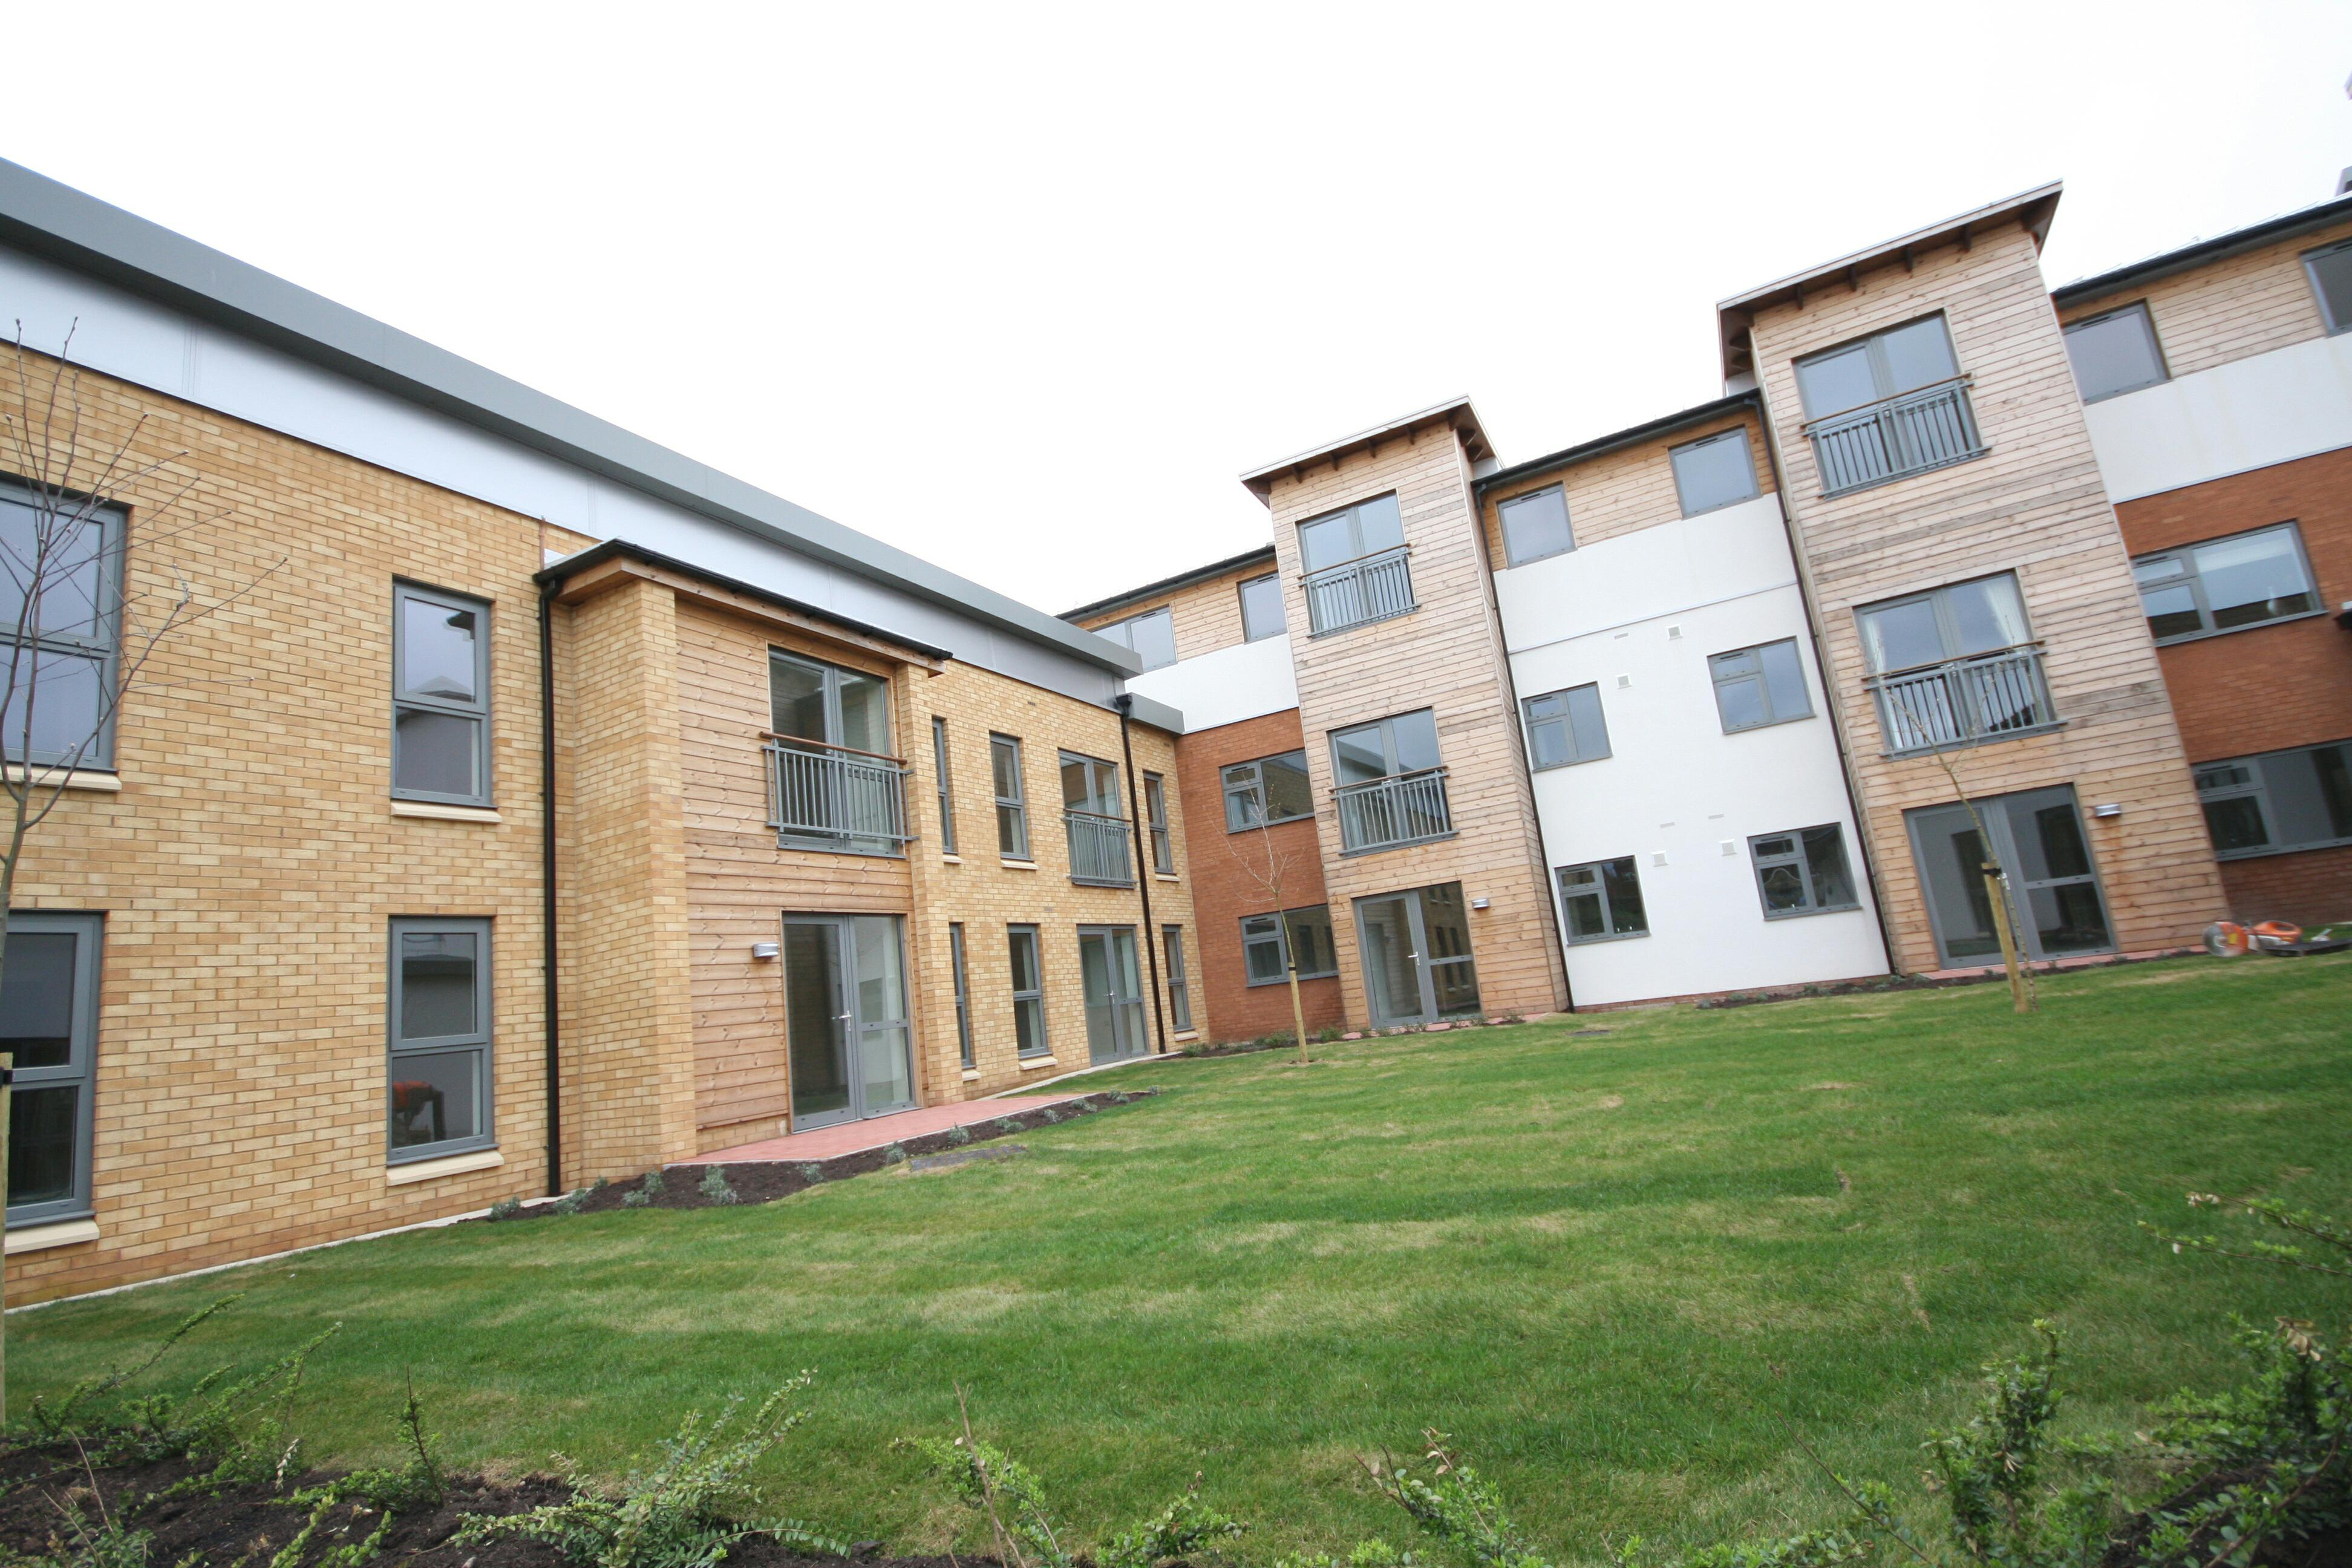 'Pickmere', Wulvern's 'retirement' apartments in Crewe where Home Instead will be operating on-site 24/7